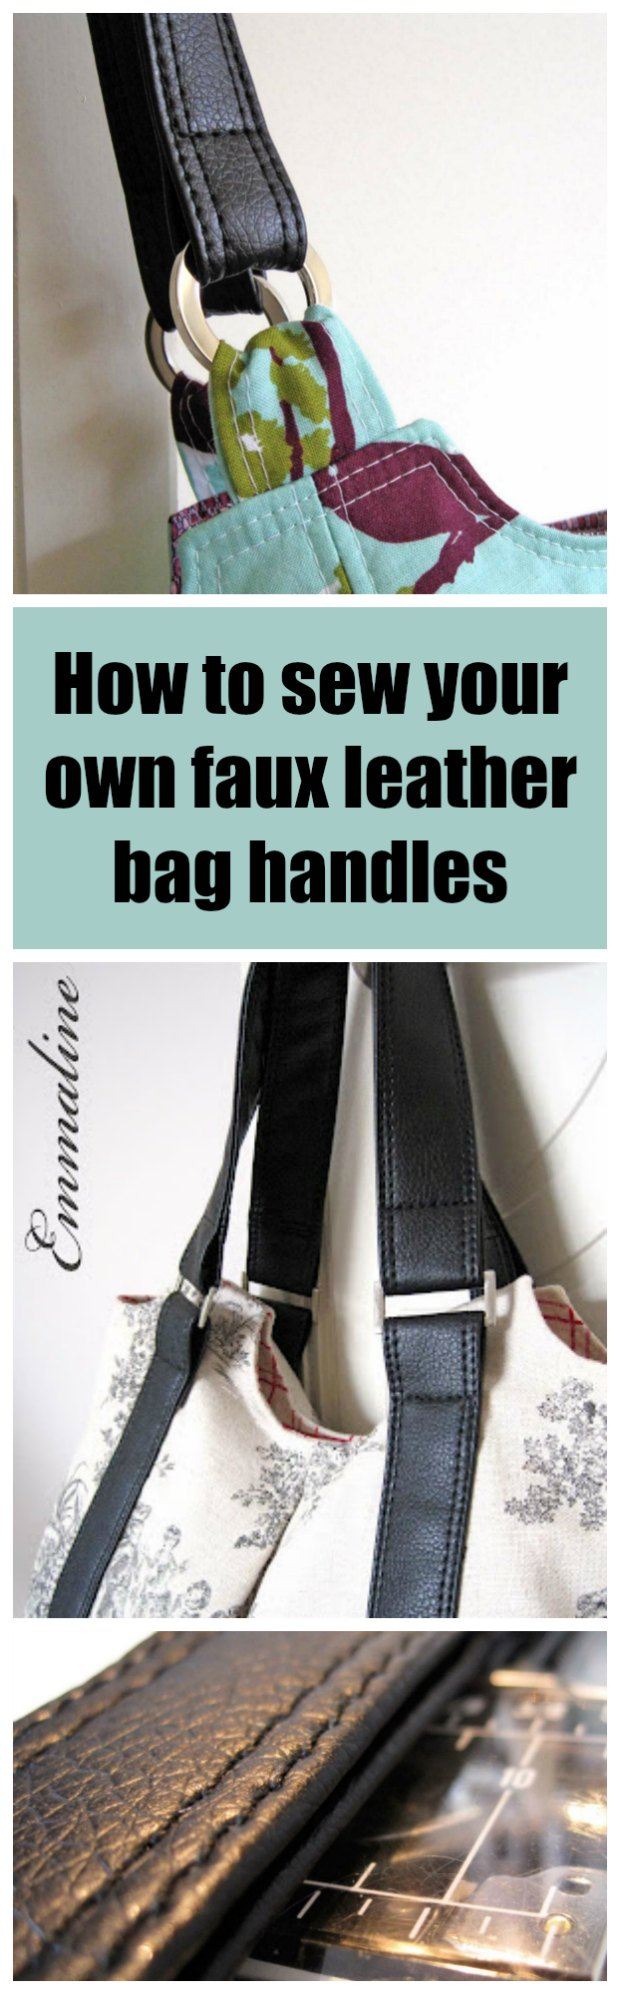 This is the ULTIMATE tutorial for how to make your own faux leather handbag straps and handles.  No thick layers, no raw edges - just perfect (and cheap) bag handles you make yourself.